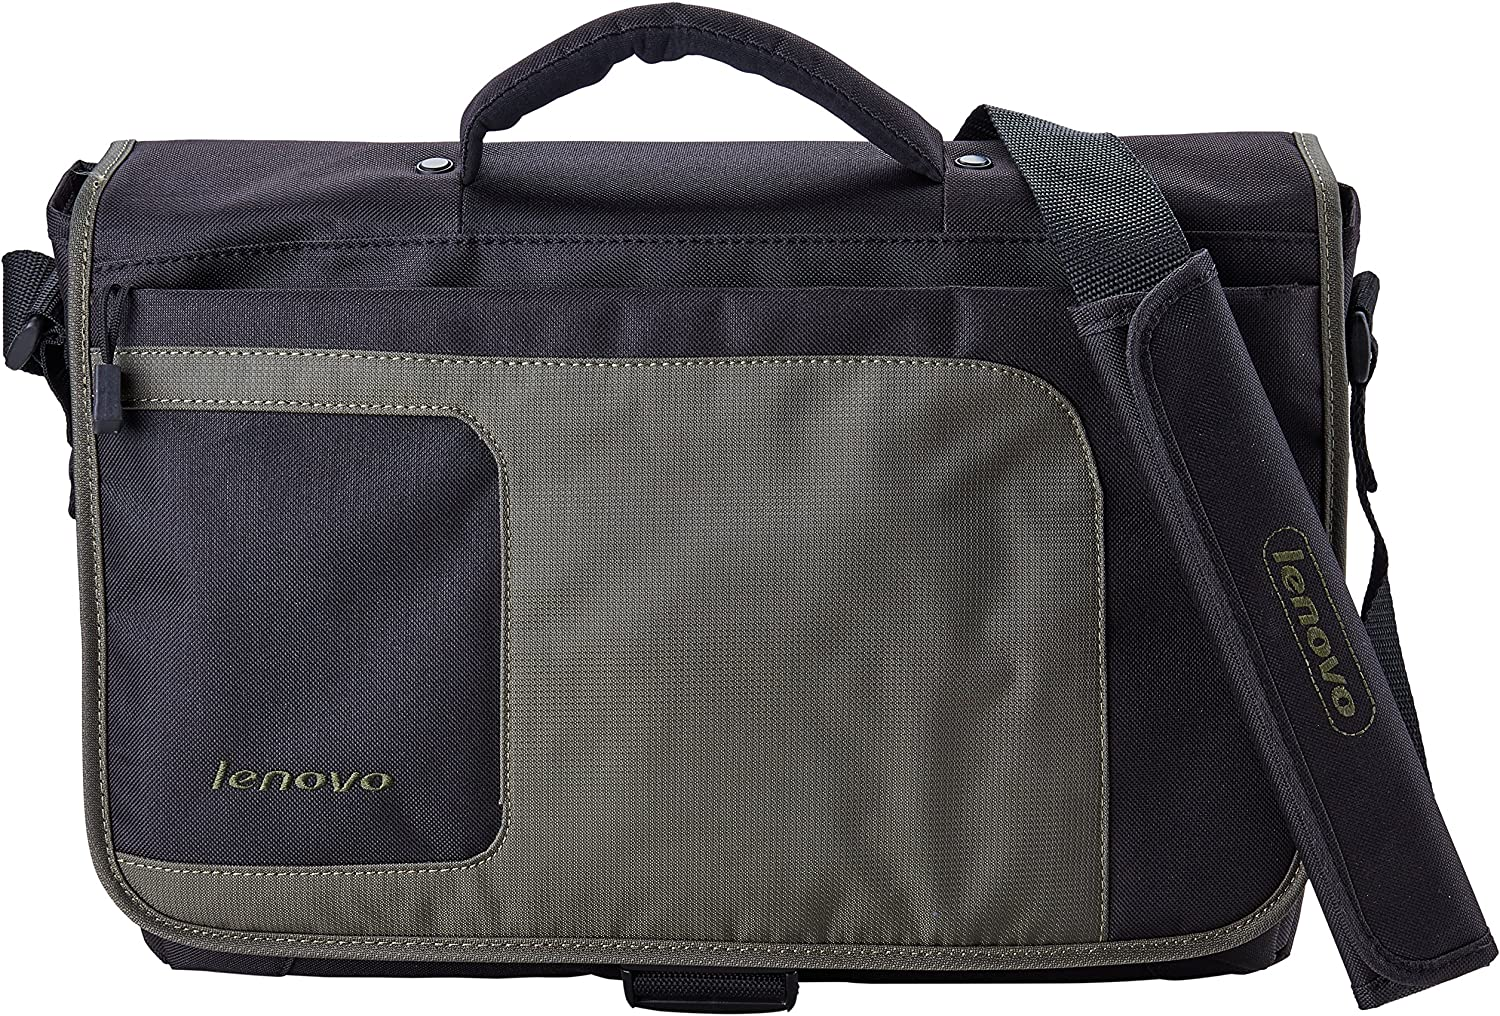 Lenovo Messenger Max - Notebook Carrying Case - 15.6""